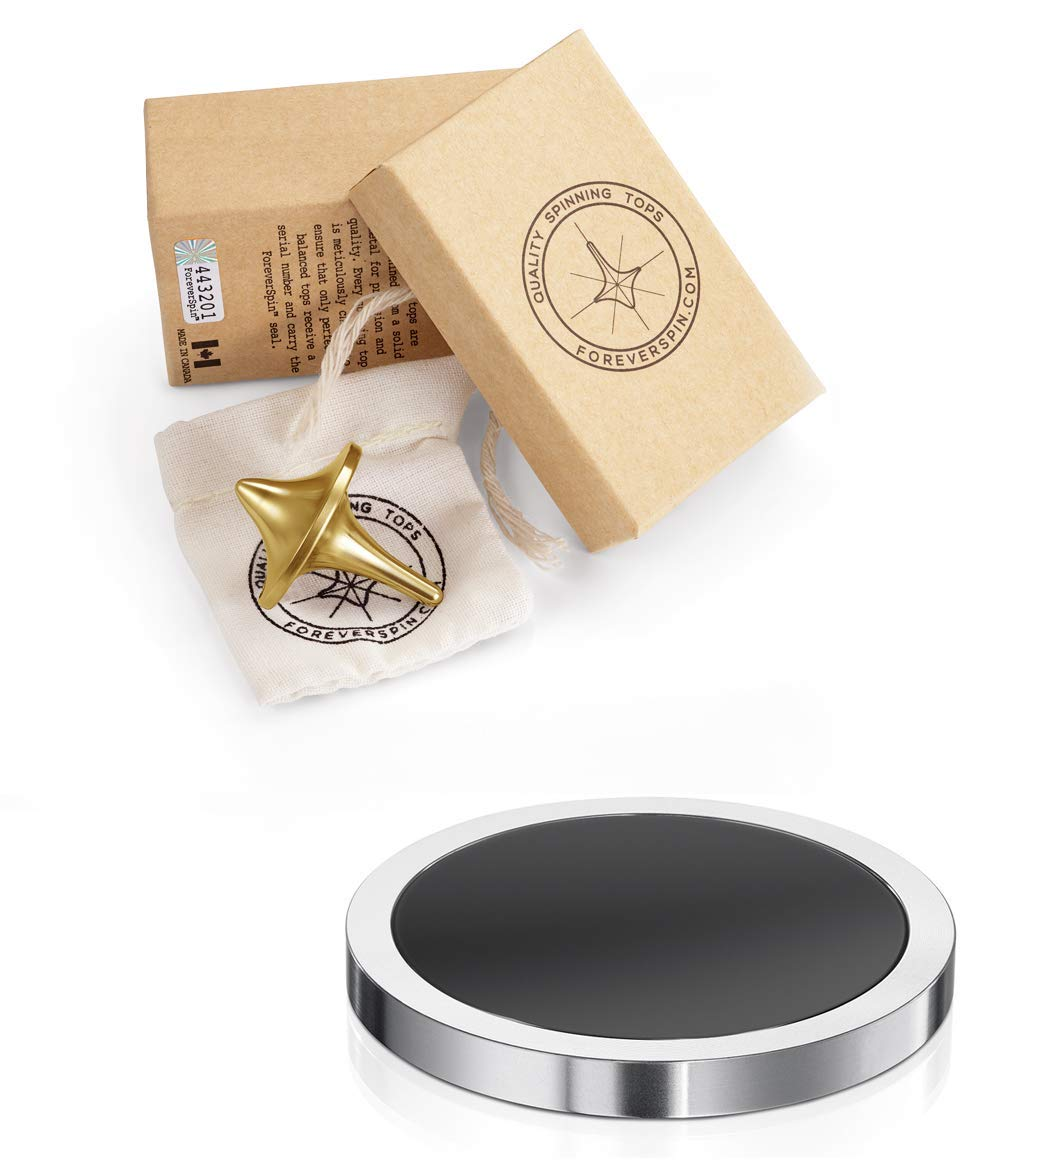 ForeverSpin 24kt Gold Plated(Brush-Finish) Top and Spinning Base Pack - World Famous Spinning Tops by ForeverSpin (Image #1)